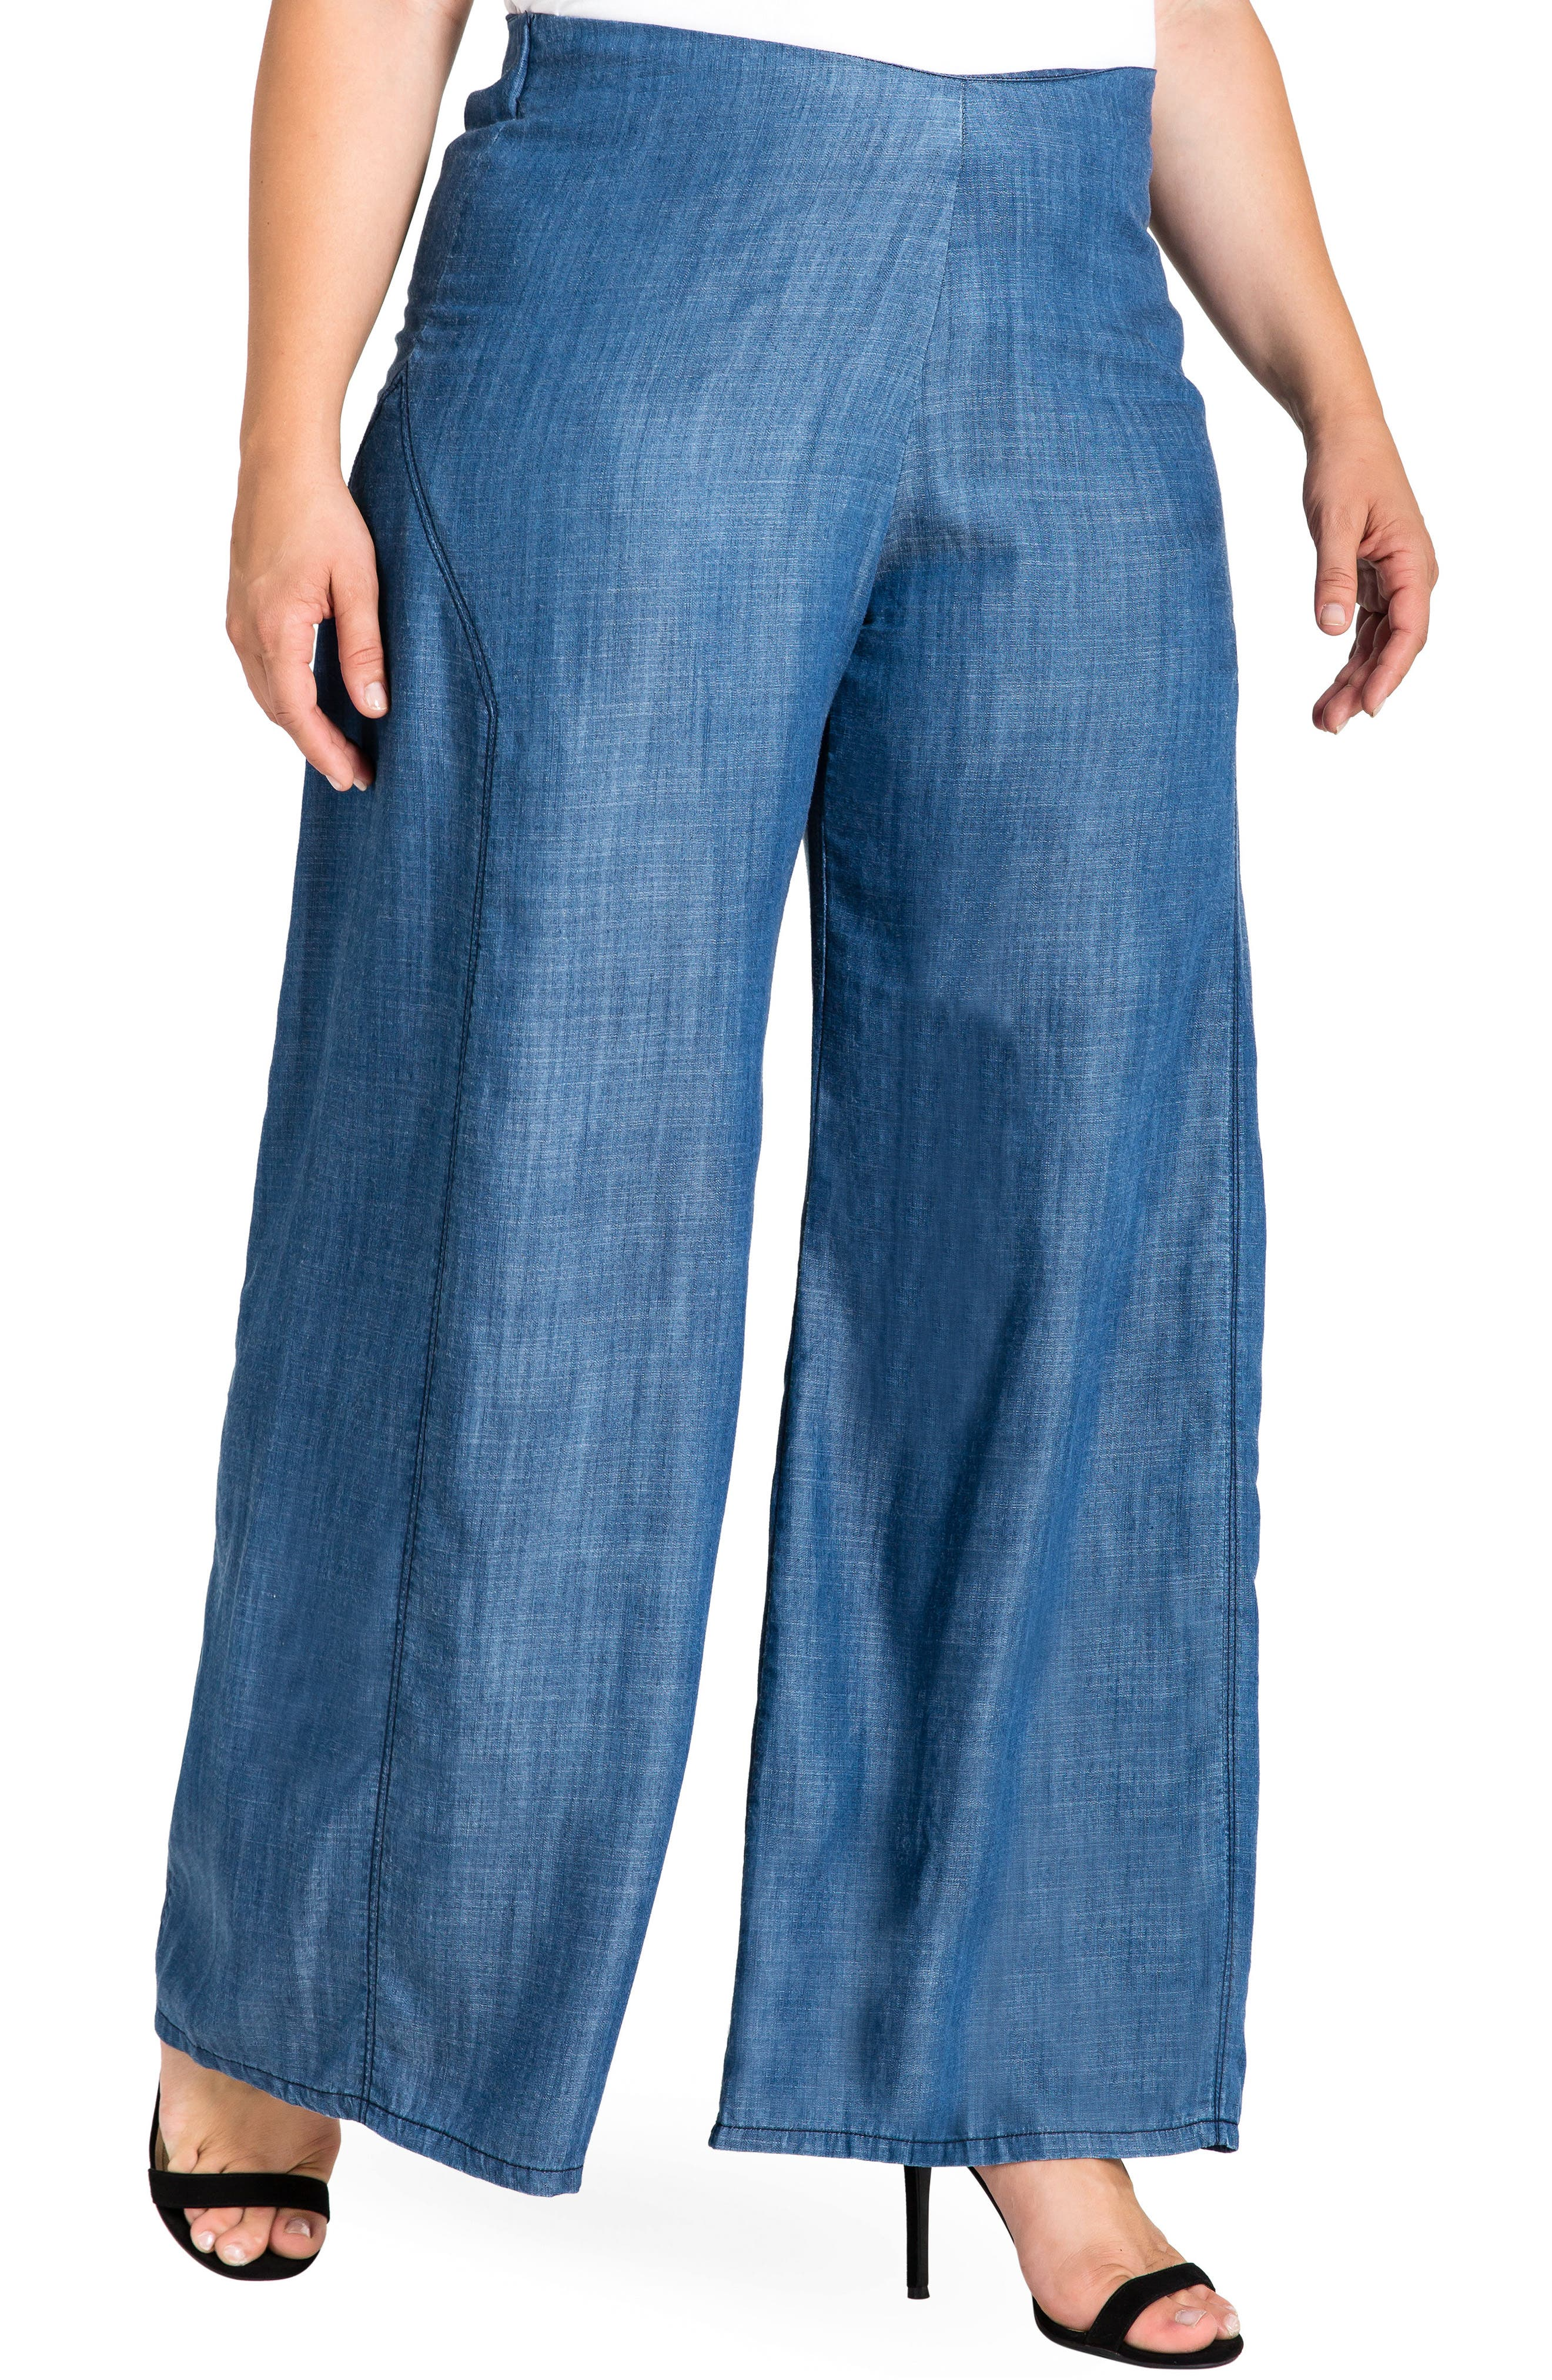 Alternate Image 1 Selected - Standards & Practices Perry Tencel® Denim Palazzo Pants (Plus Size)